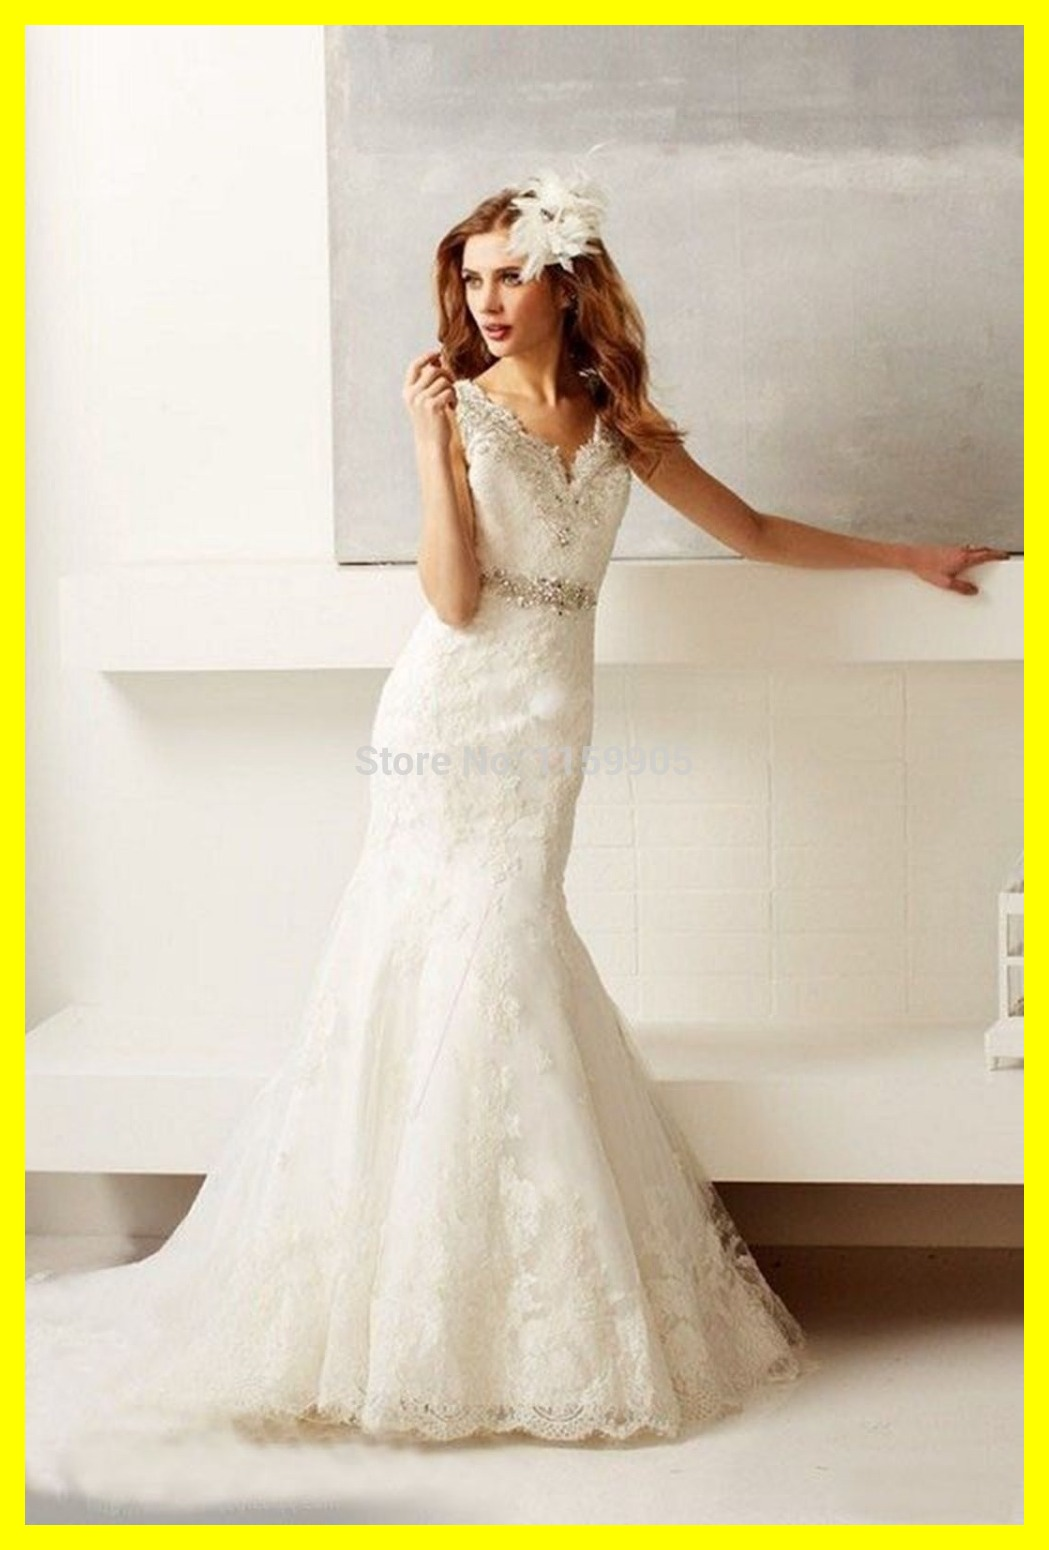 Plus Size Wedding Reception Dresses - Obamaletter